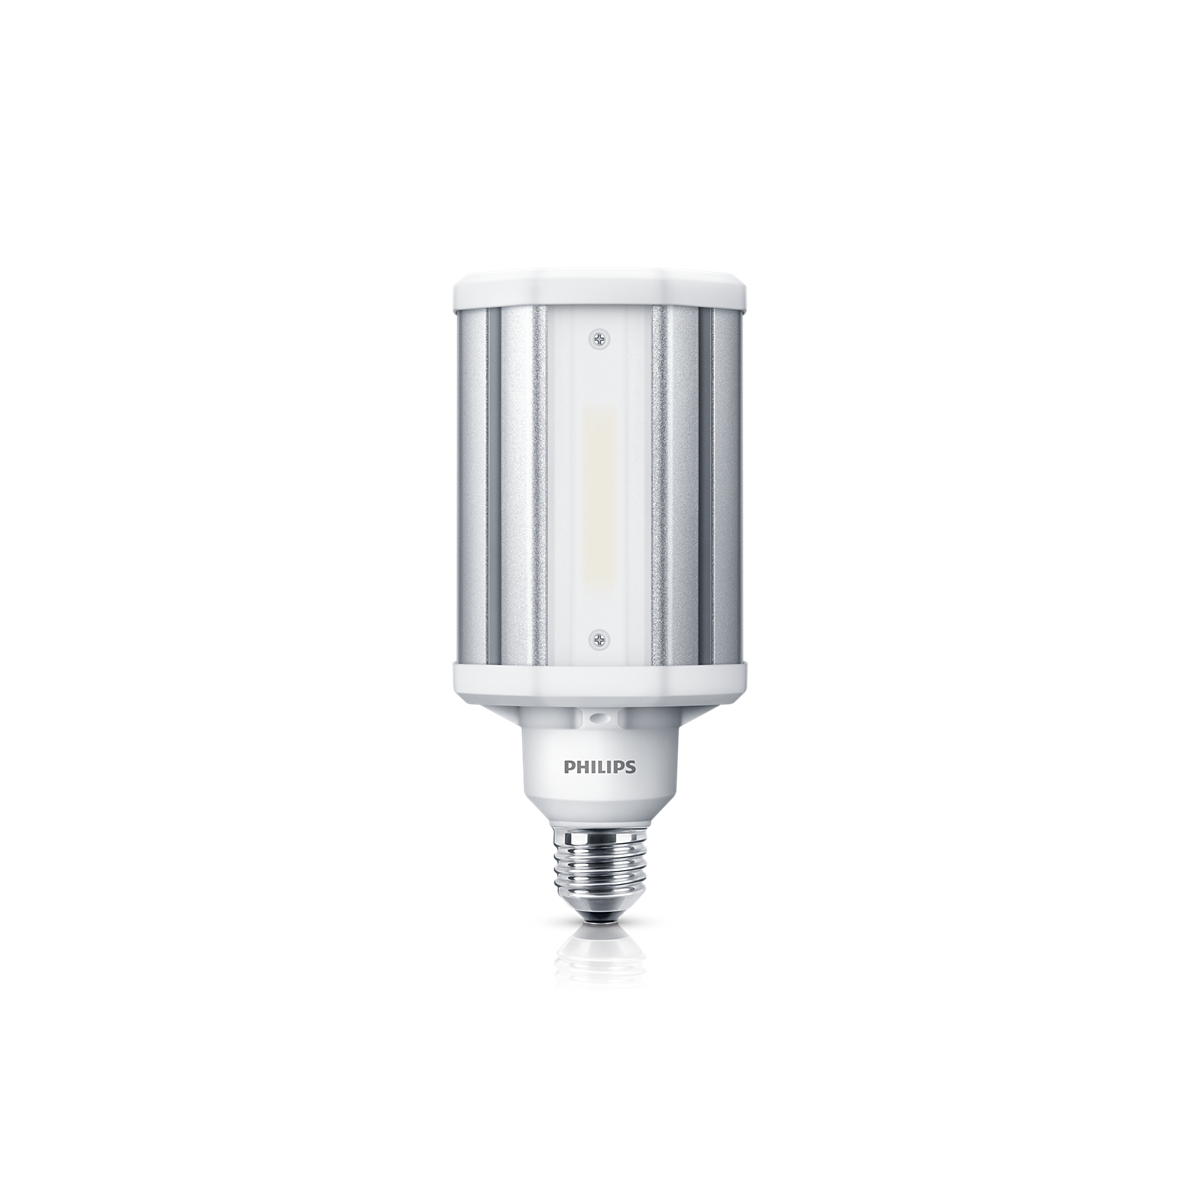 TrueForce LED Public (urban/drumuri – HPL/SON)